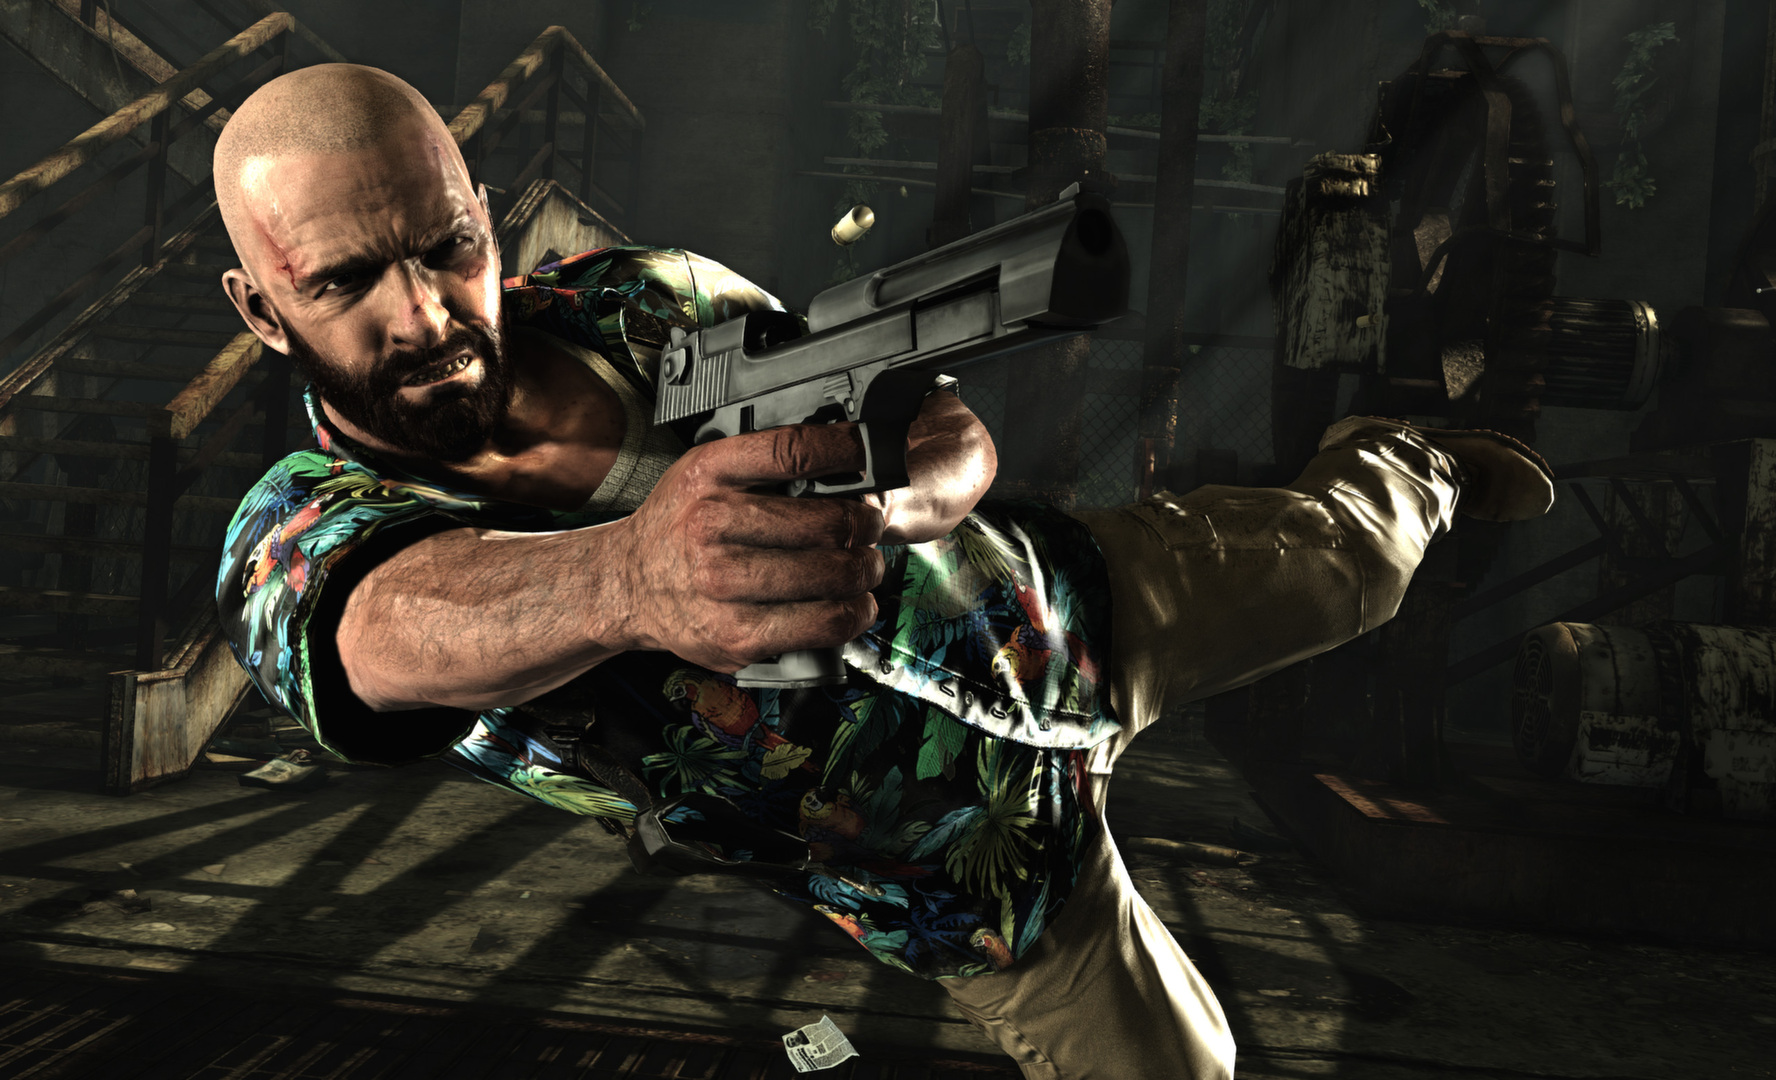 Max Payne 3 System Requirements Can I Run It Pcgamebenchmark